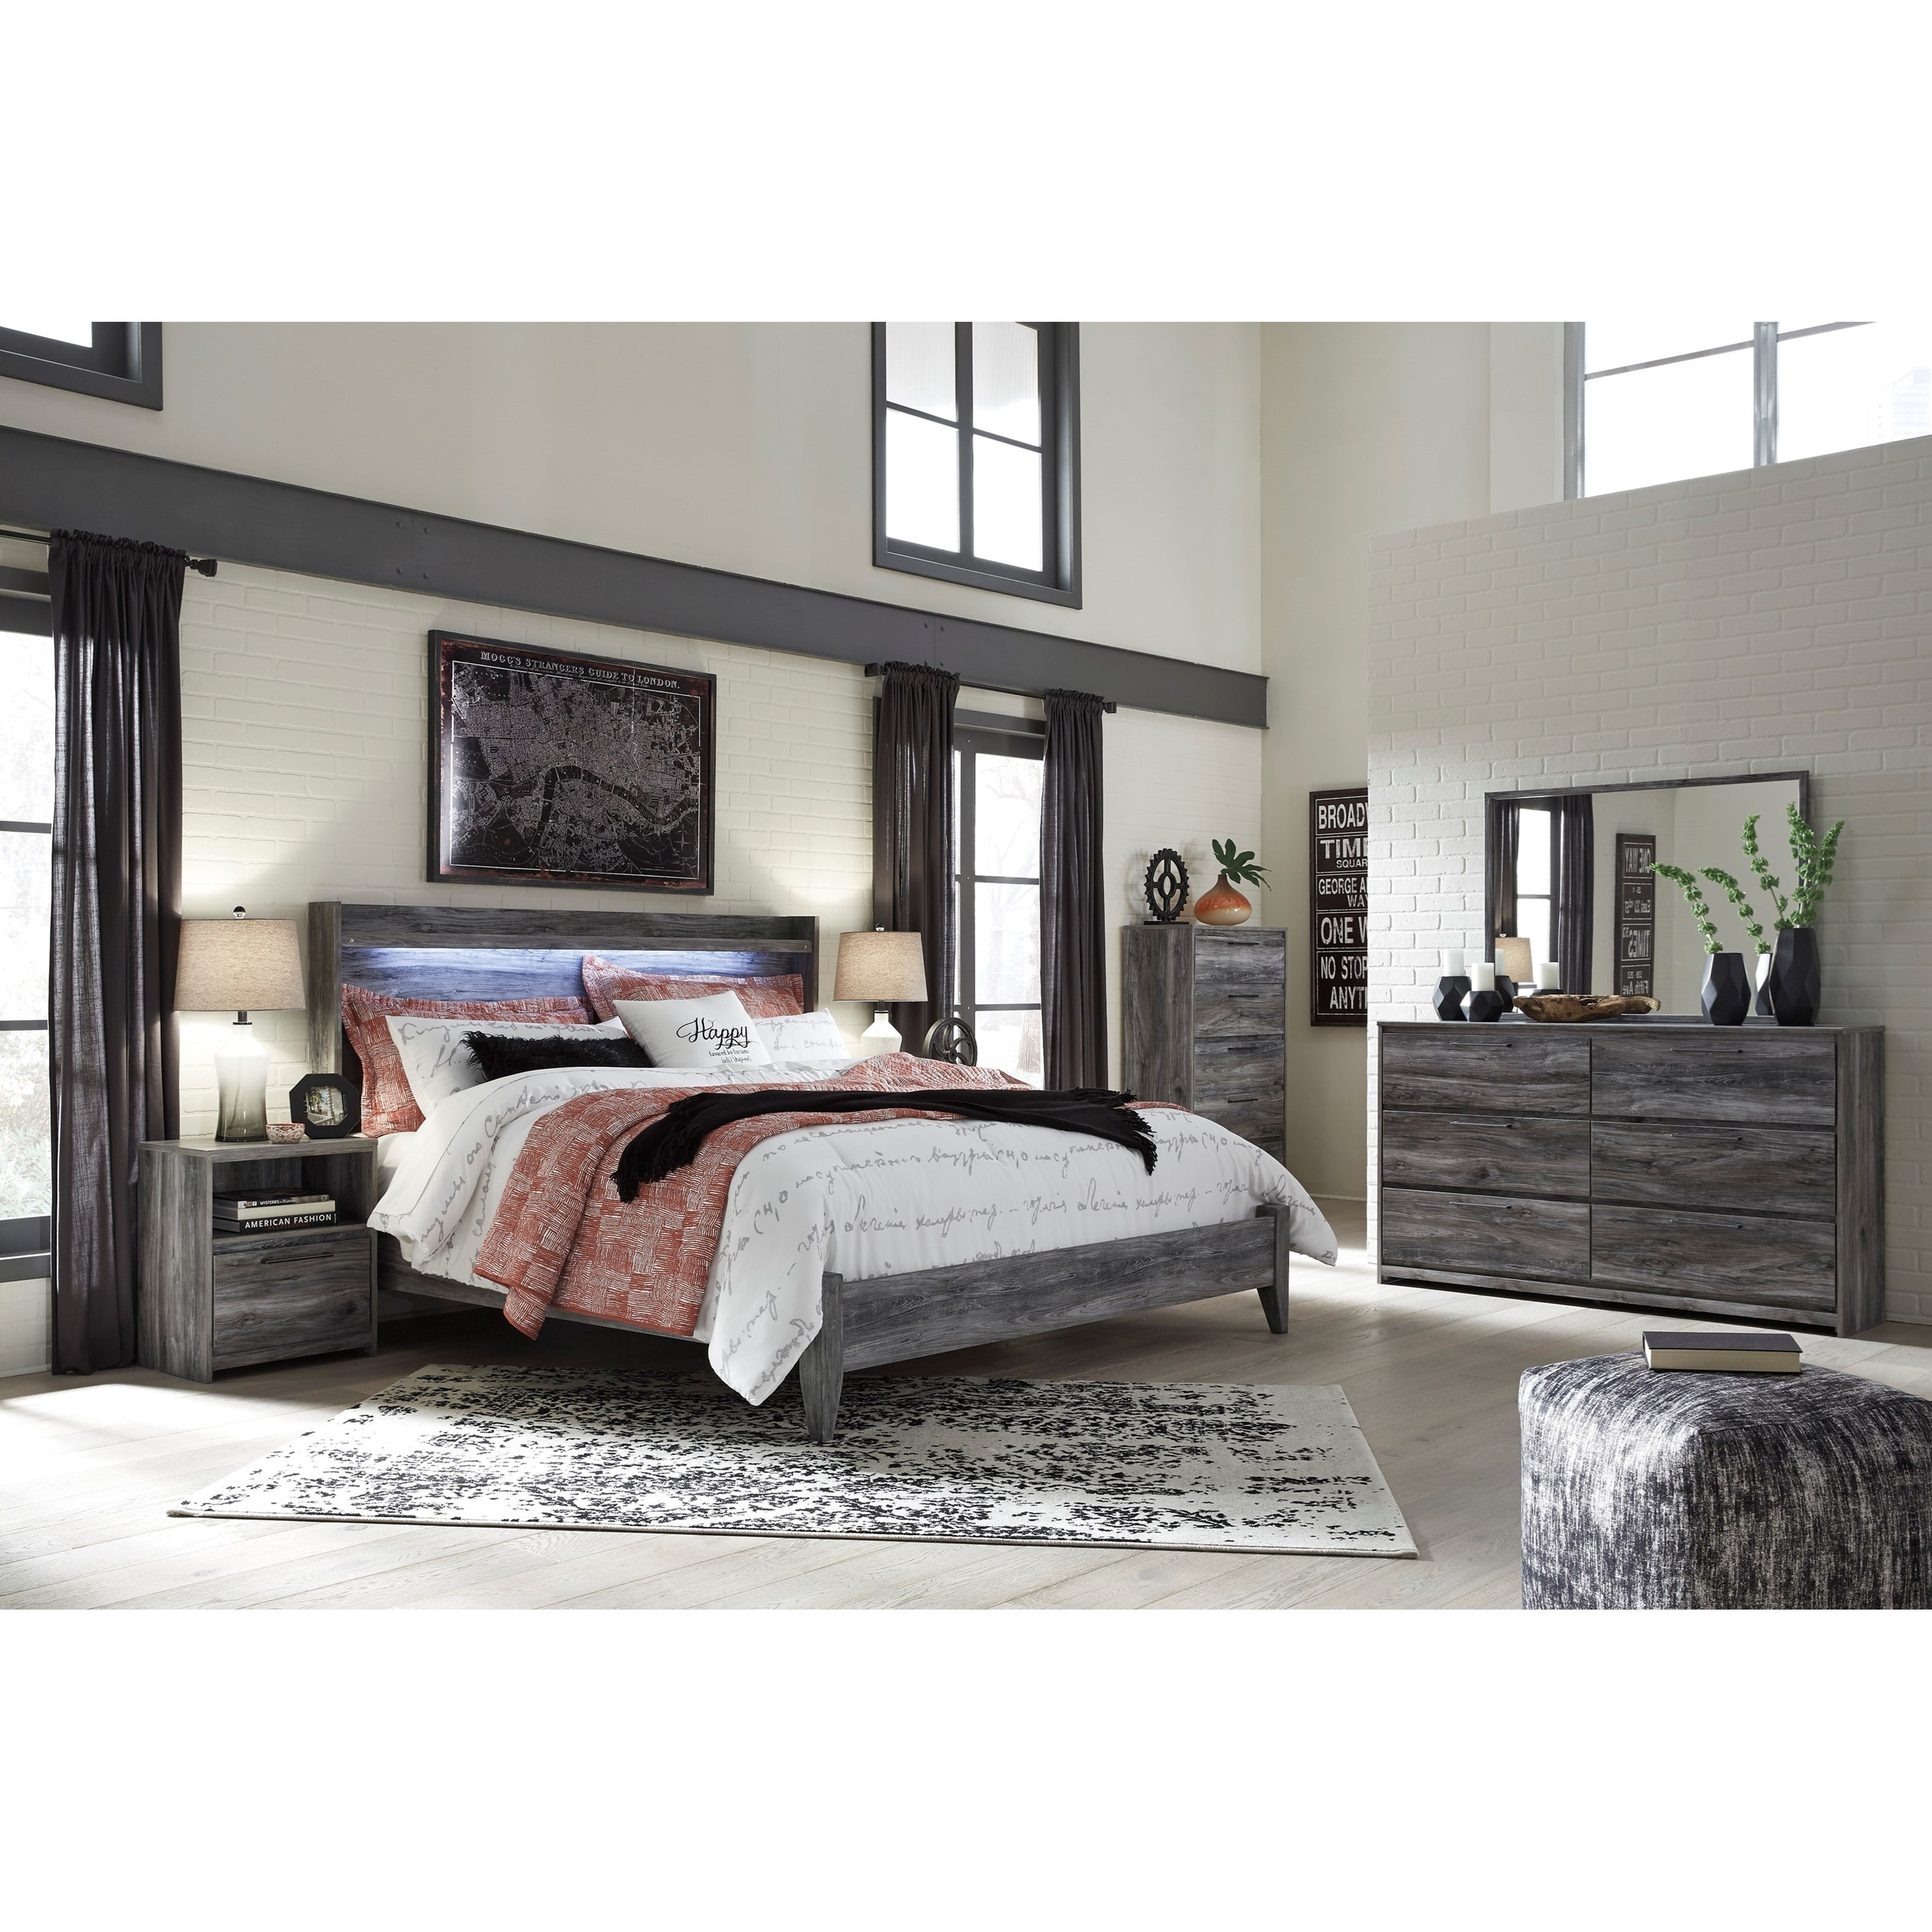 Baystorm King Bedroom Group by Ashley (Signature Design) at Johnny Janosik